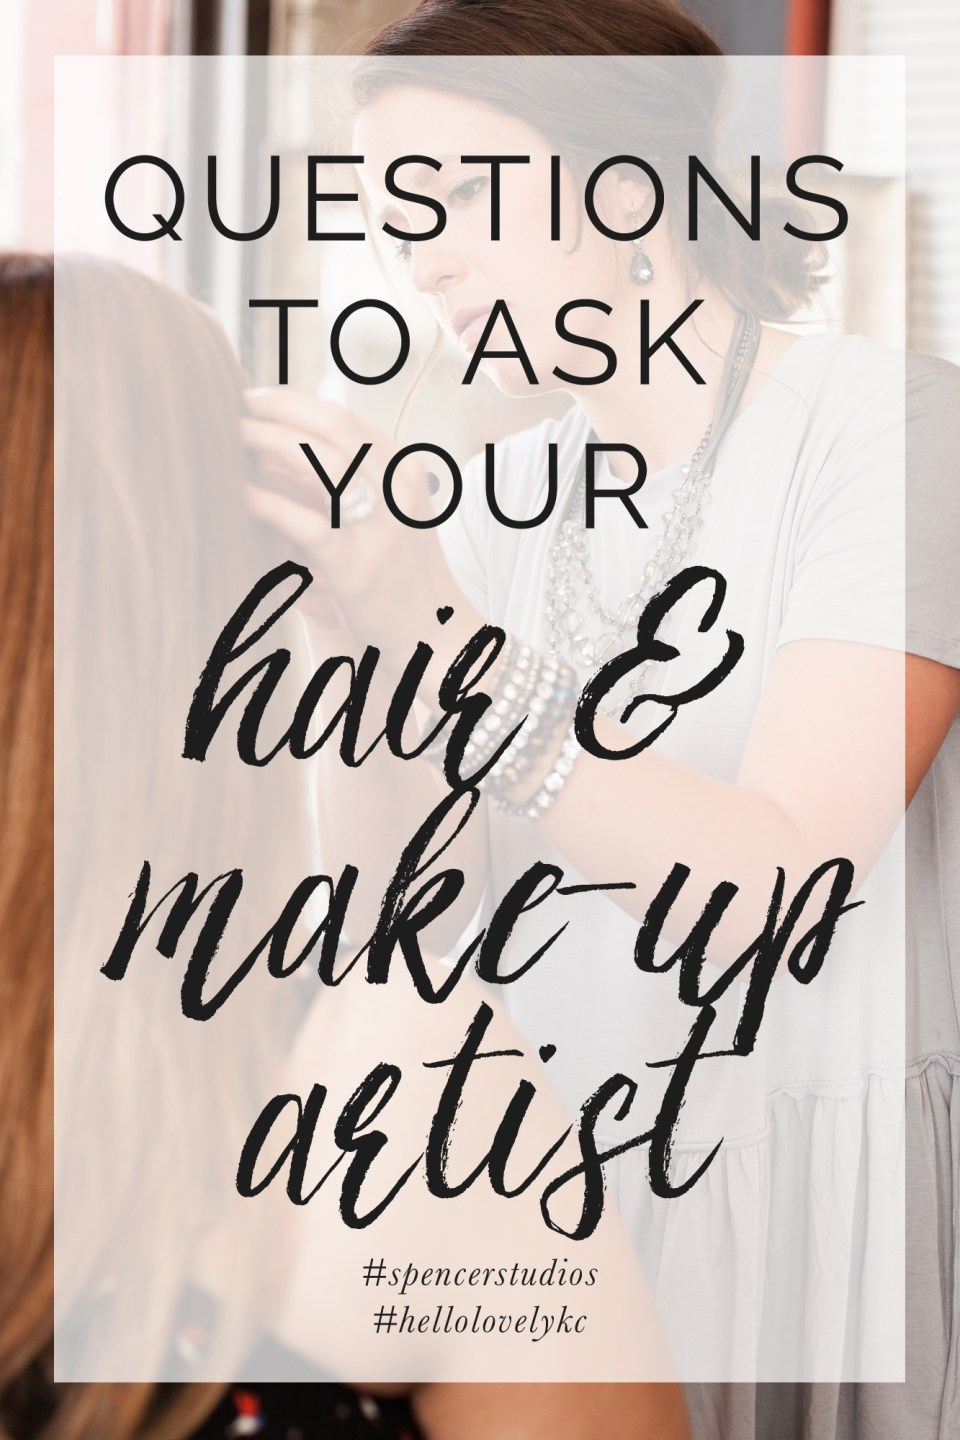 10 questions to ask | hair & make-up artist | spencer studios